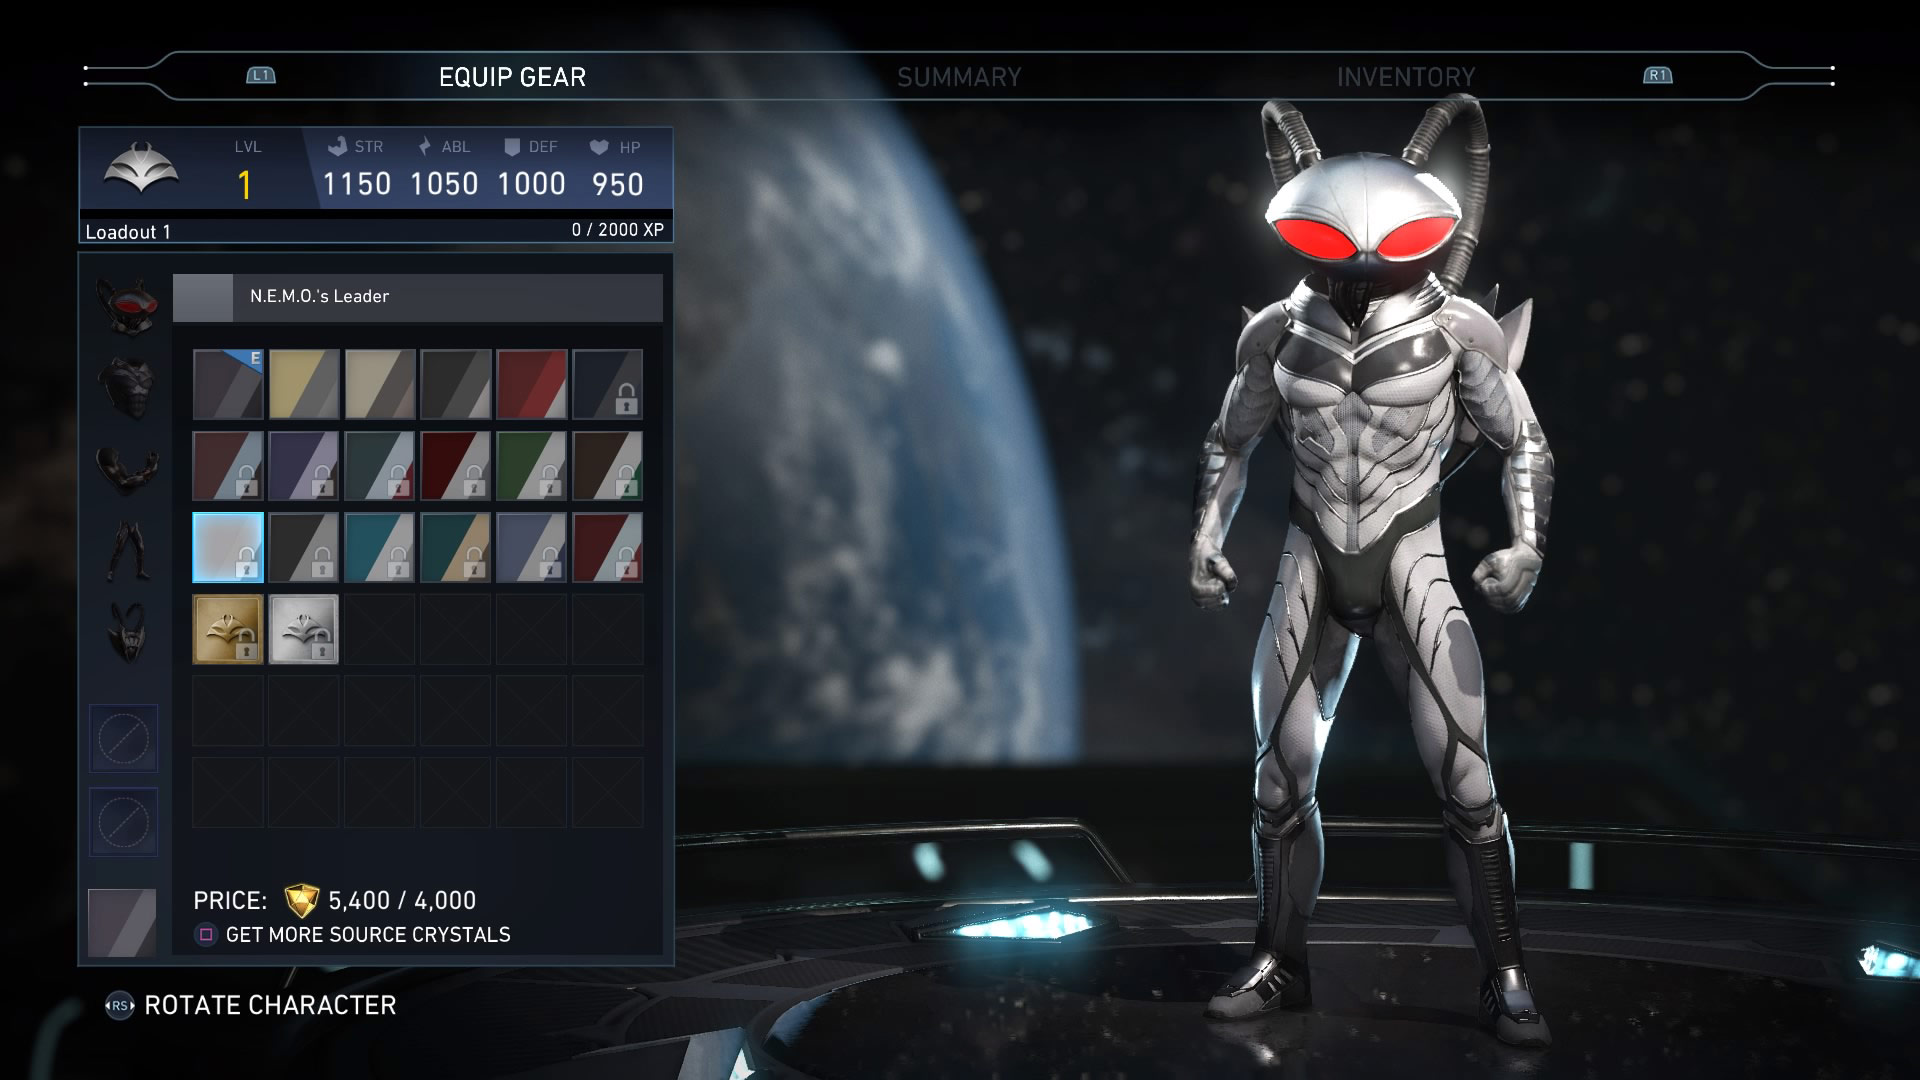 Black Manta screenshots in Injustice 2 3 out of 7 image gallery